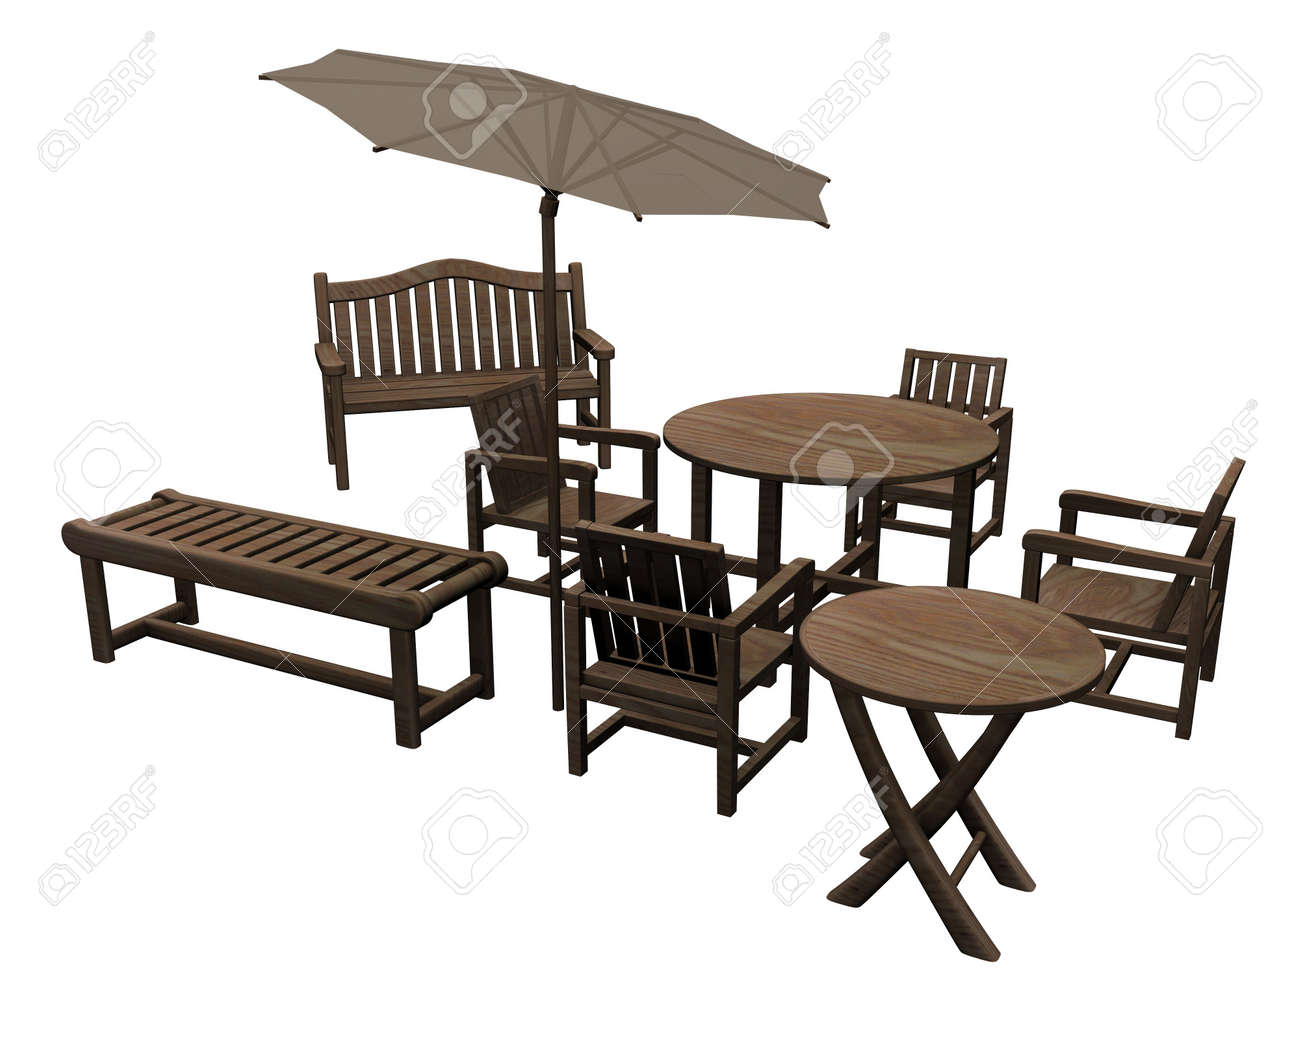 3d Render Of Garden Furniture Stock Photo   12906542